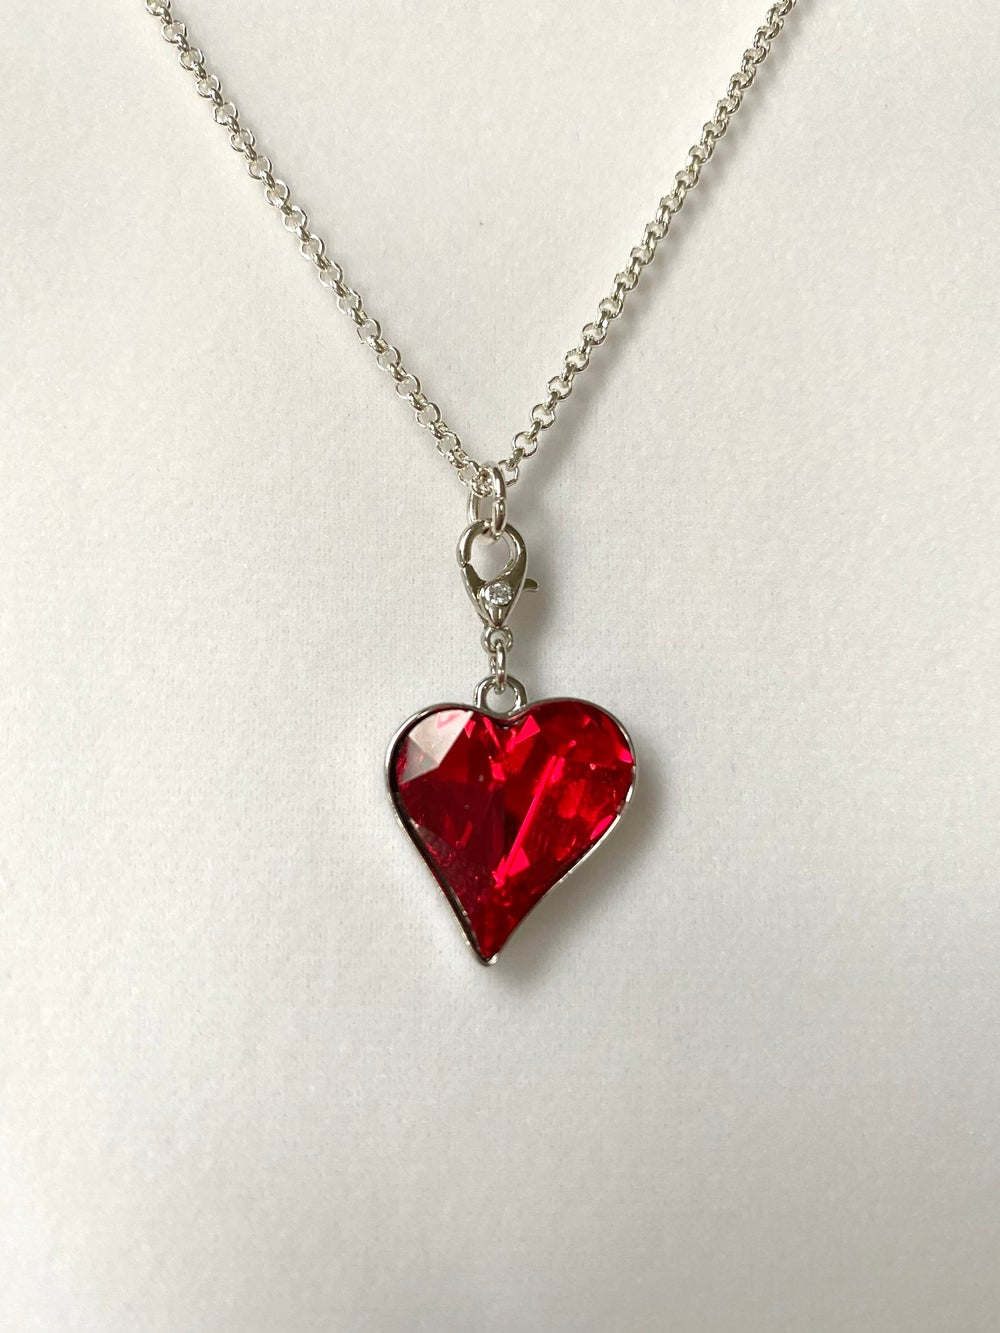 Red Crystal Heart Pendant and Silver Chain Necklace